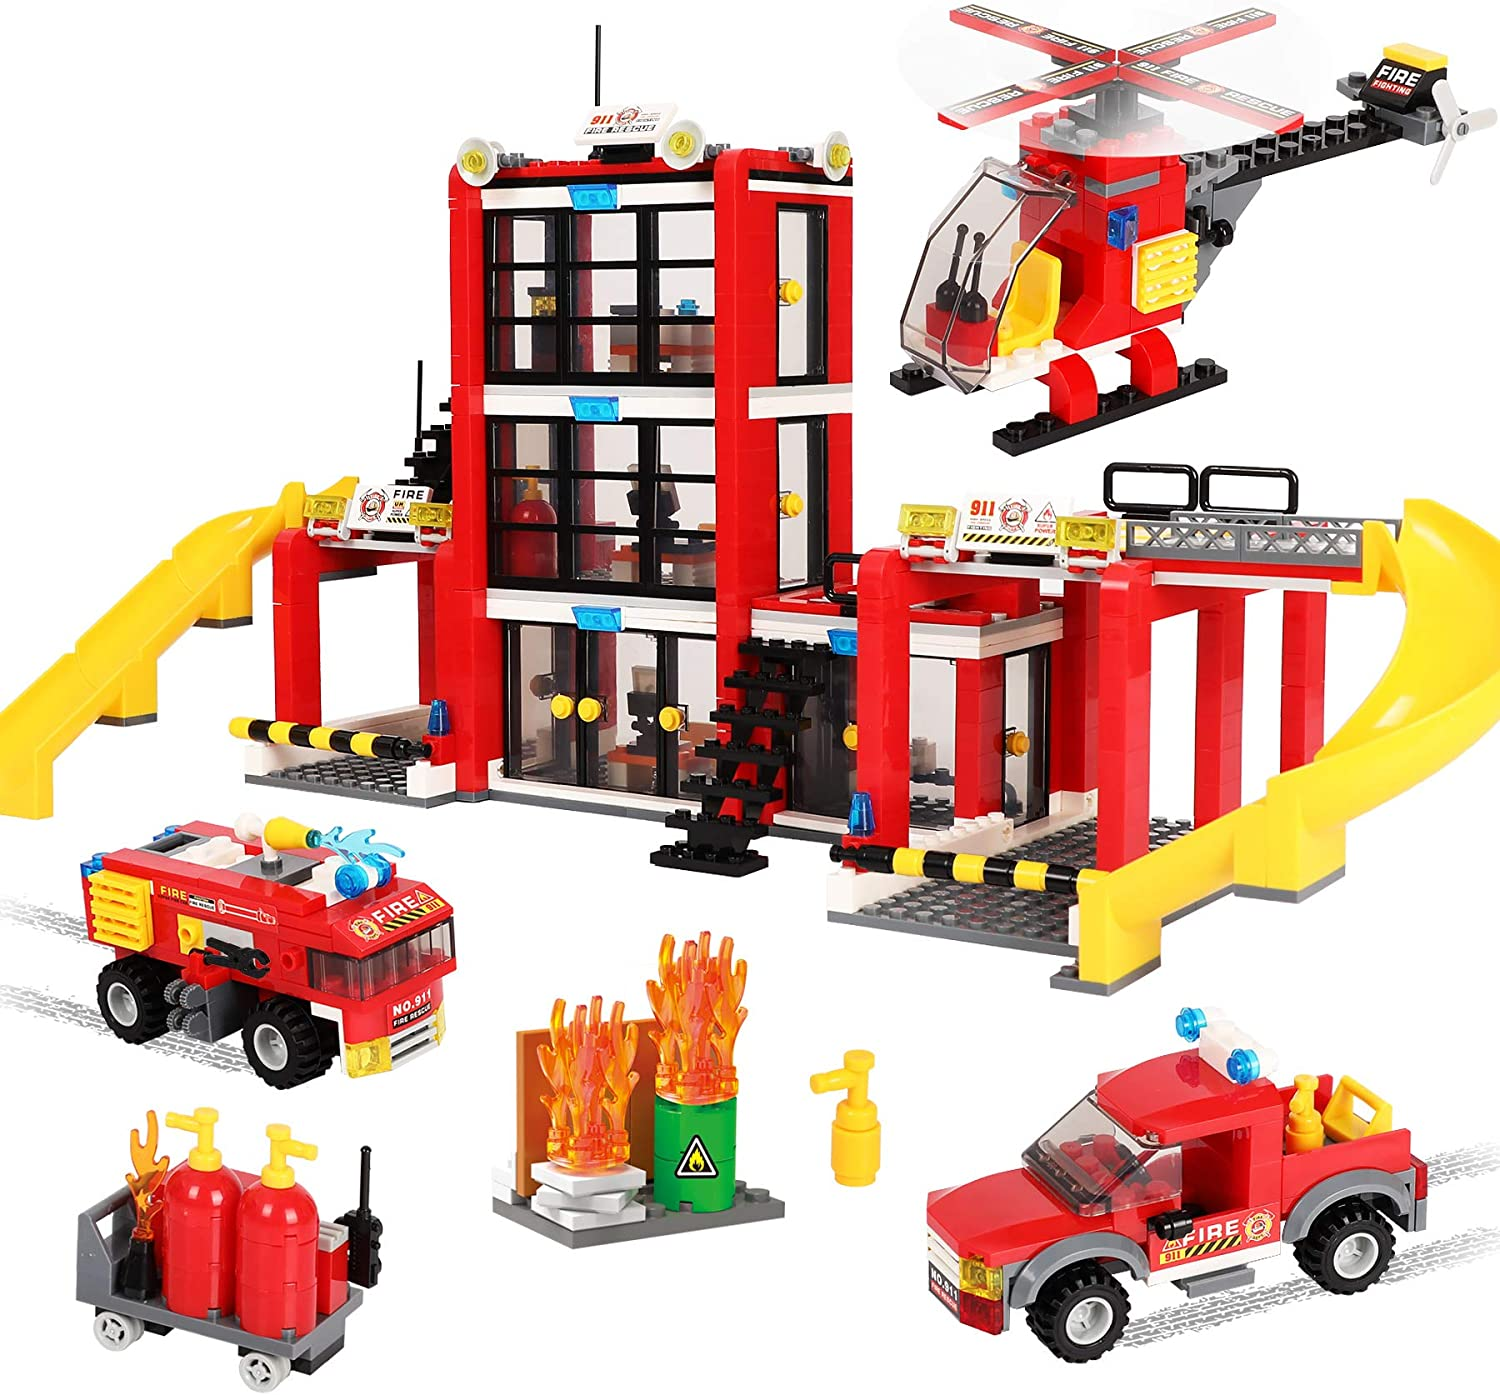 Roleplay Parent-Child Playset Vehicle Fire Truck Gift for Kids Boys Girls 6-12 Creative Fire Rescue Toy 896 Pieces City Fire Station STEM Building Blocks Set Helicopter Baseplates Storage Box